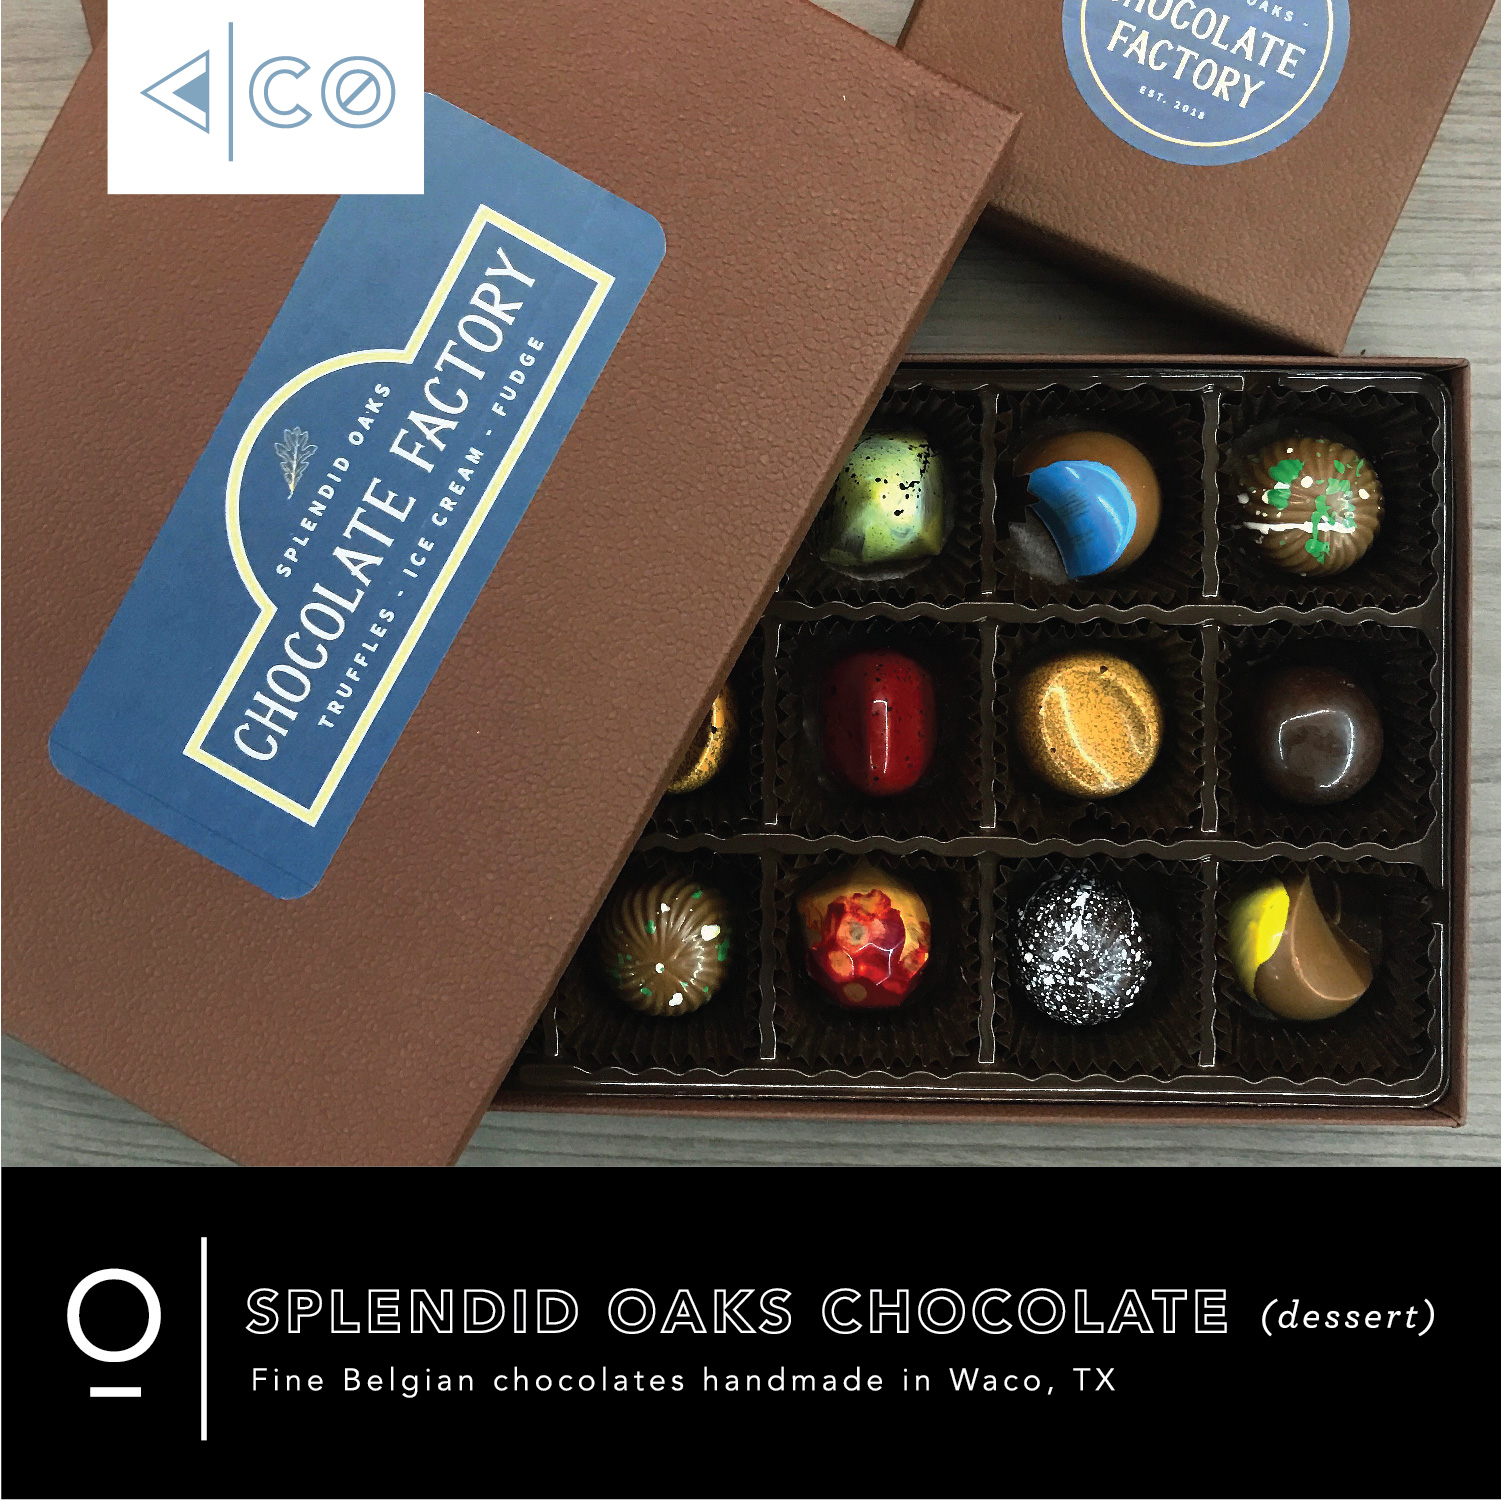 Splendid Oaks Chocolate Factory